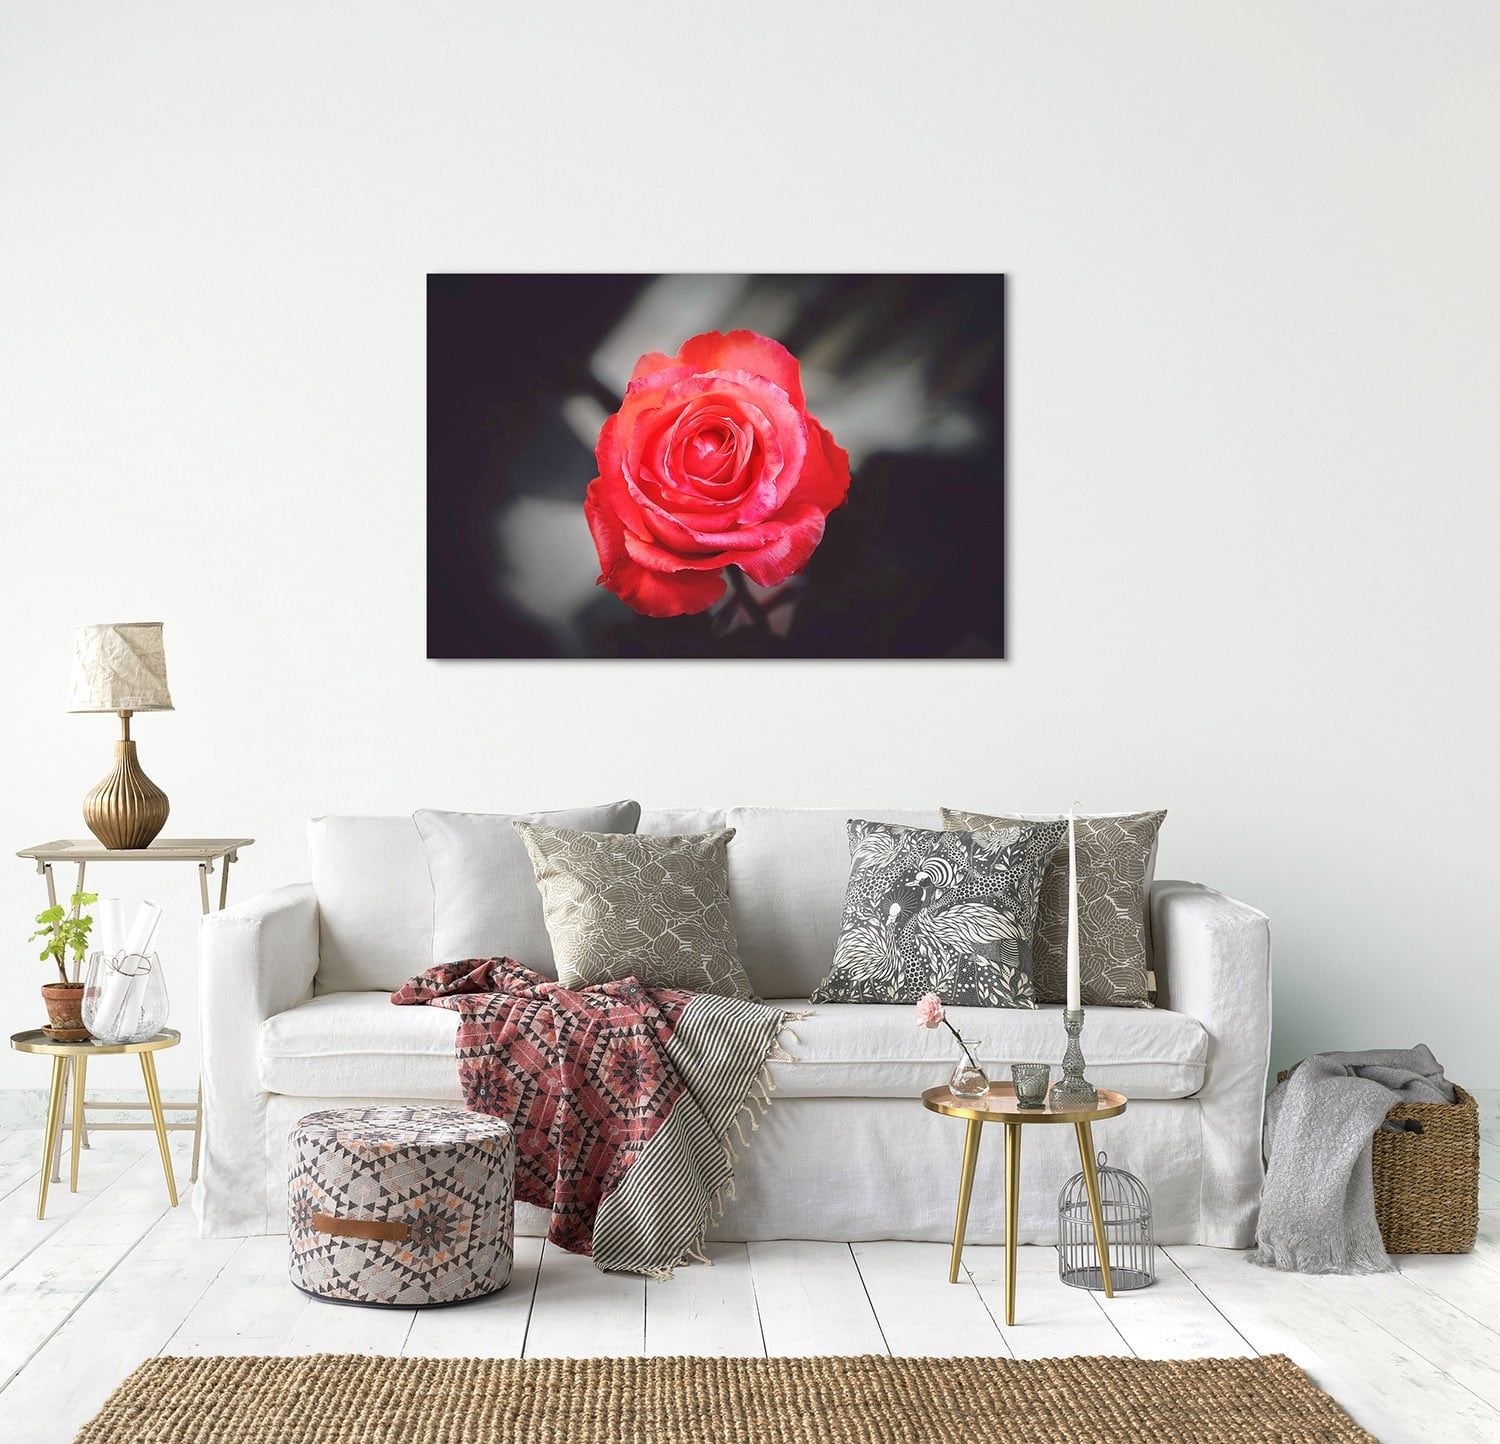 Rose modern art photo for a unique wall decoration